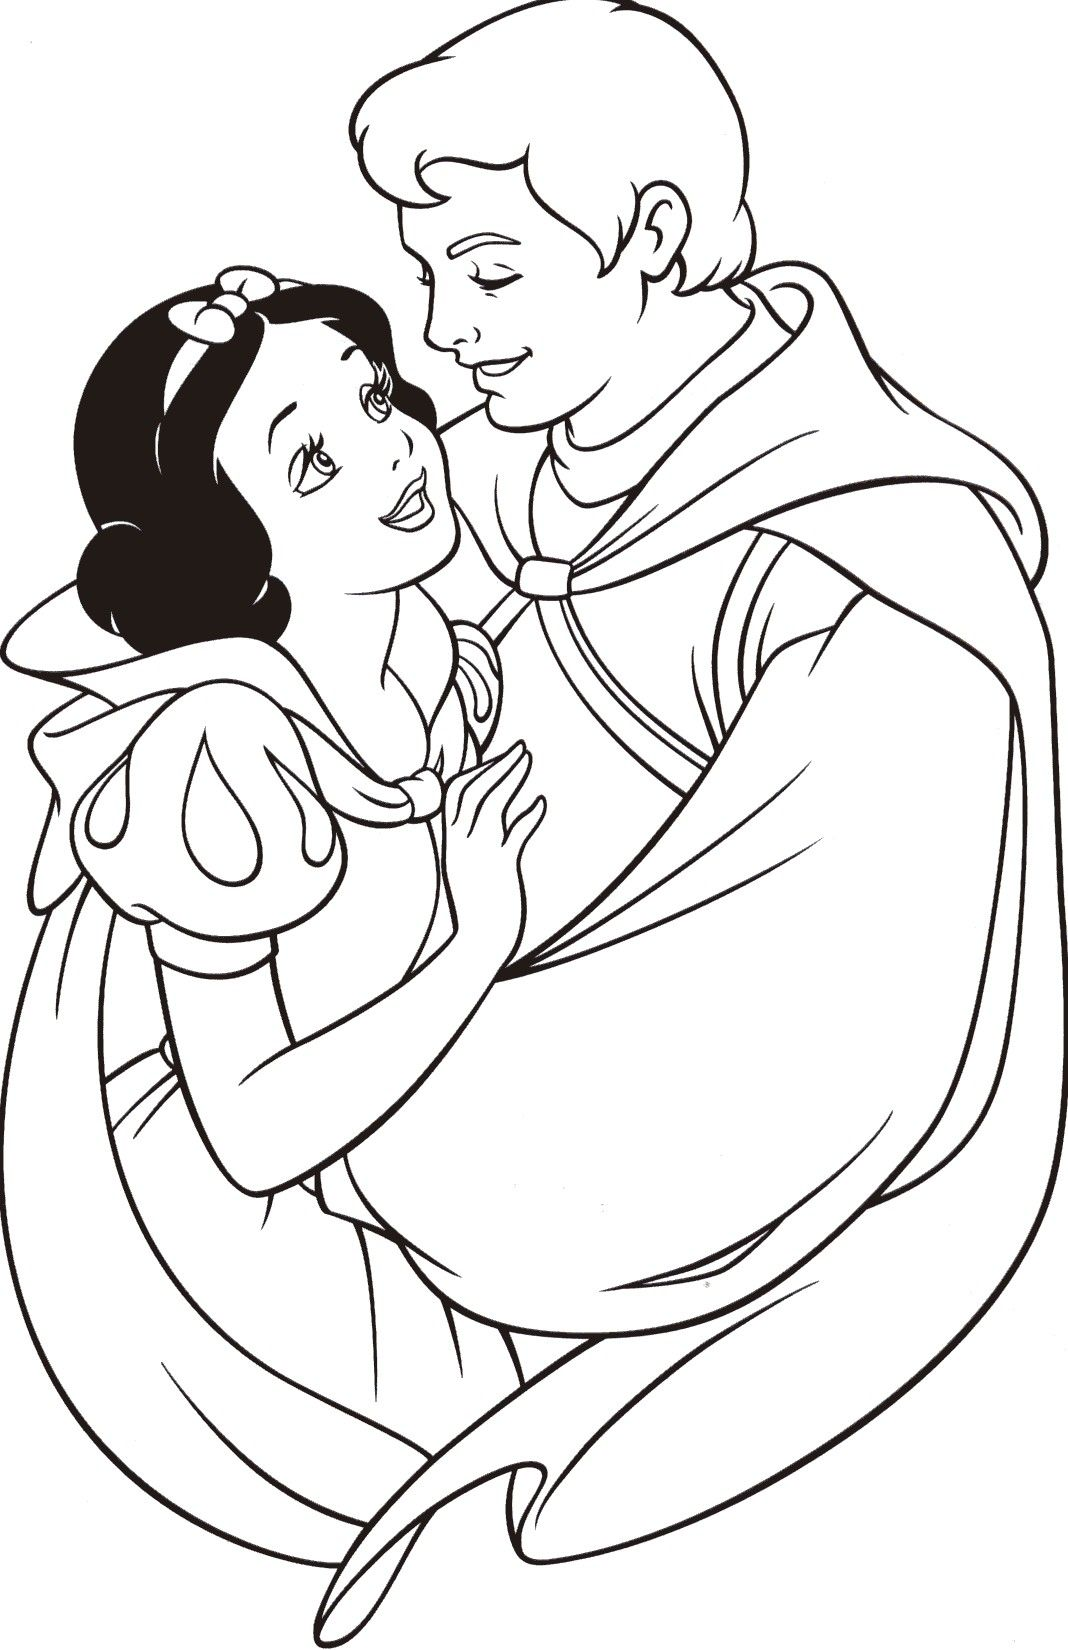 Snow & Prince Charming | Coloring Pages | Pinterest | Snow, Coloring ...